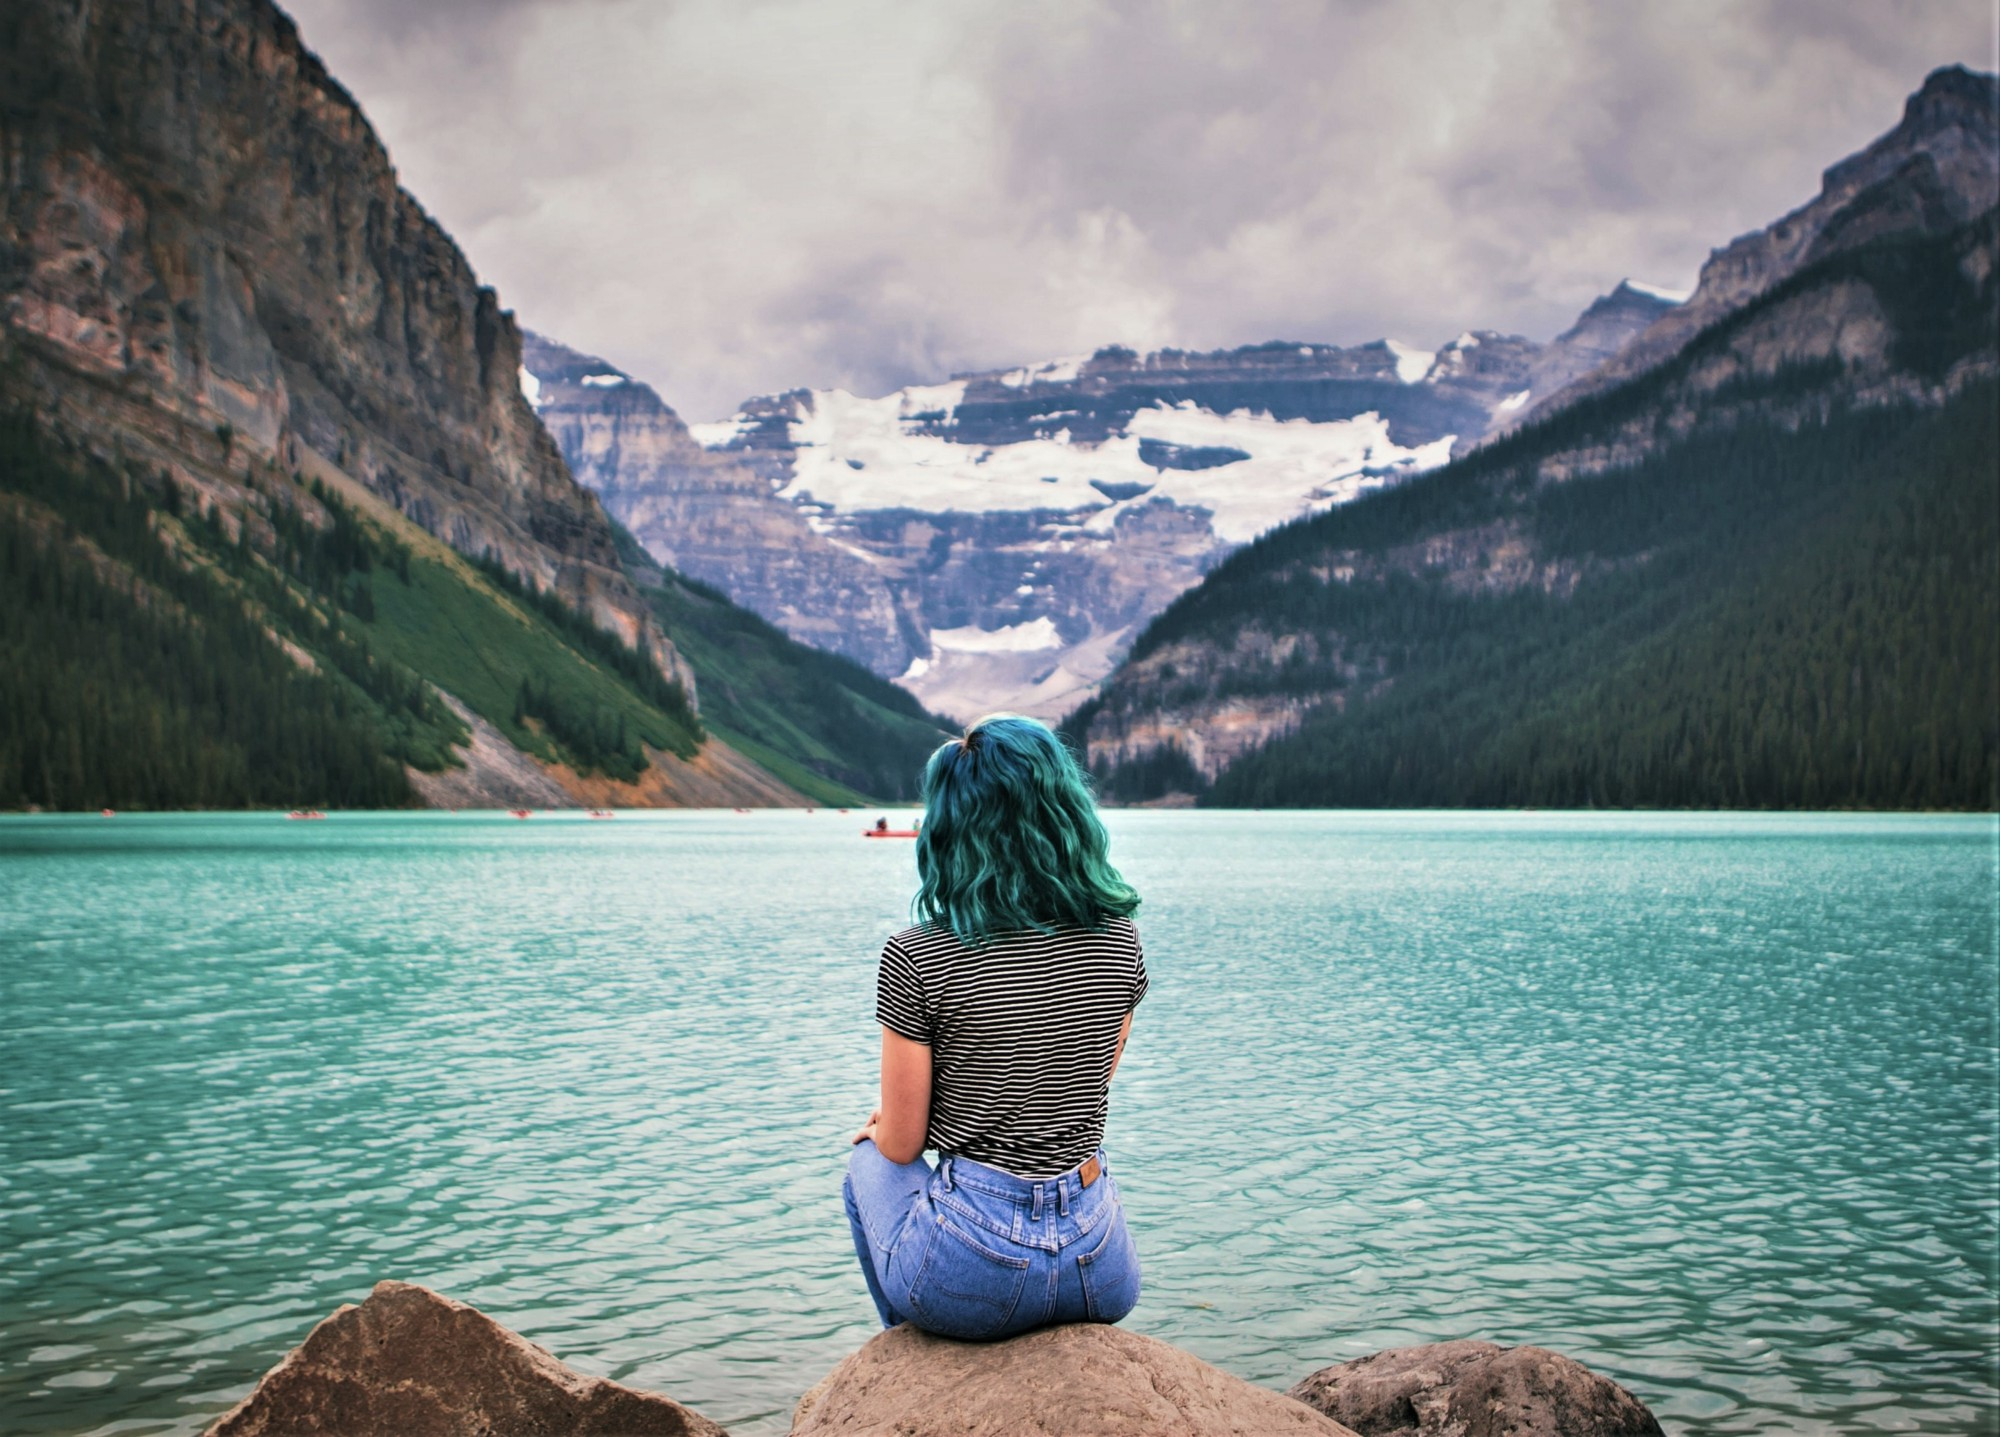 rear view of woman wearing blue jeans sitting on a rock looking out over lake and mountains